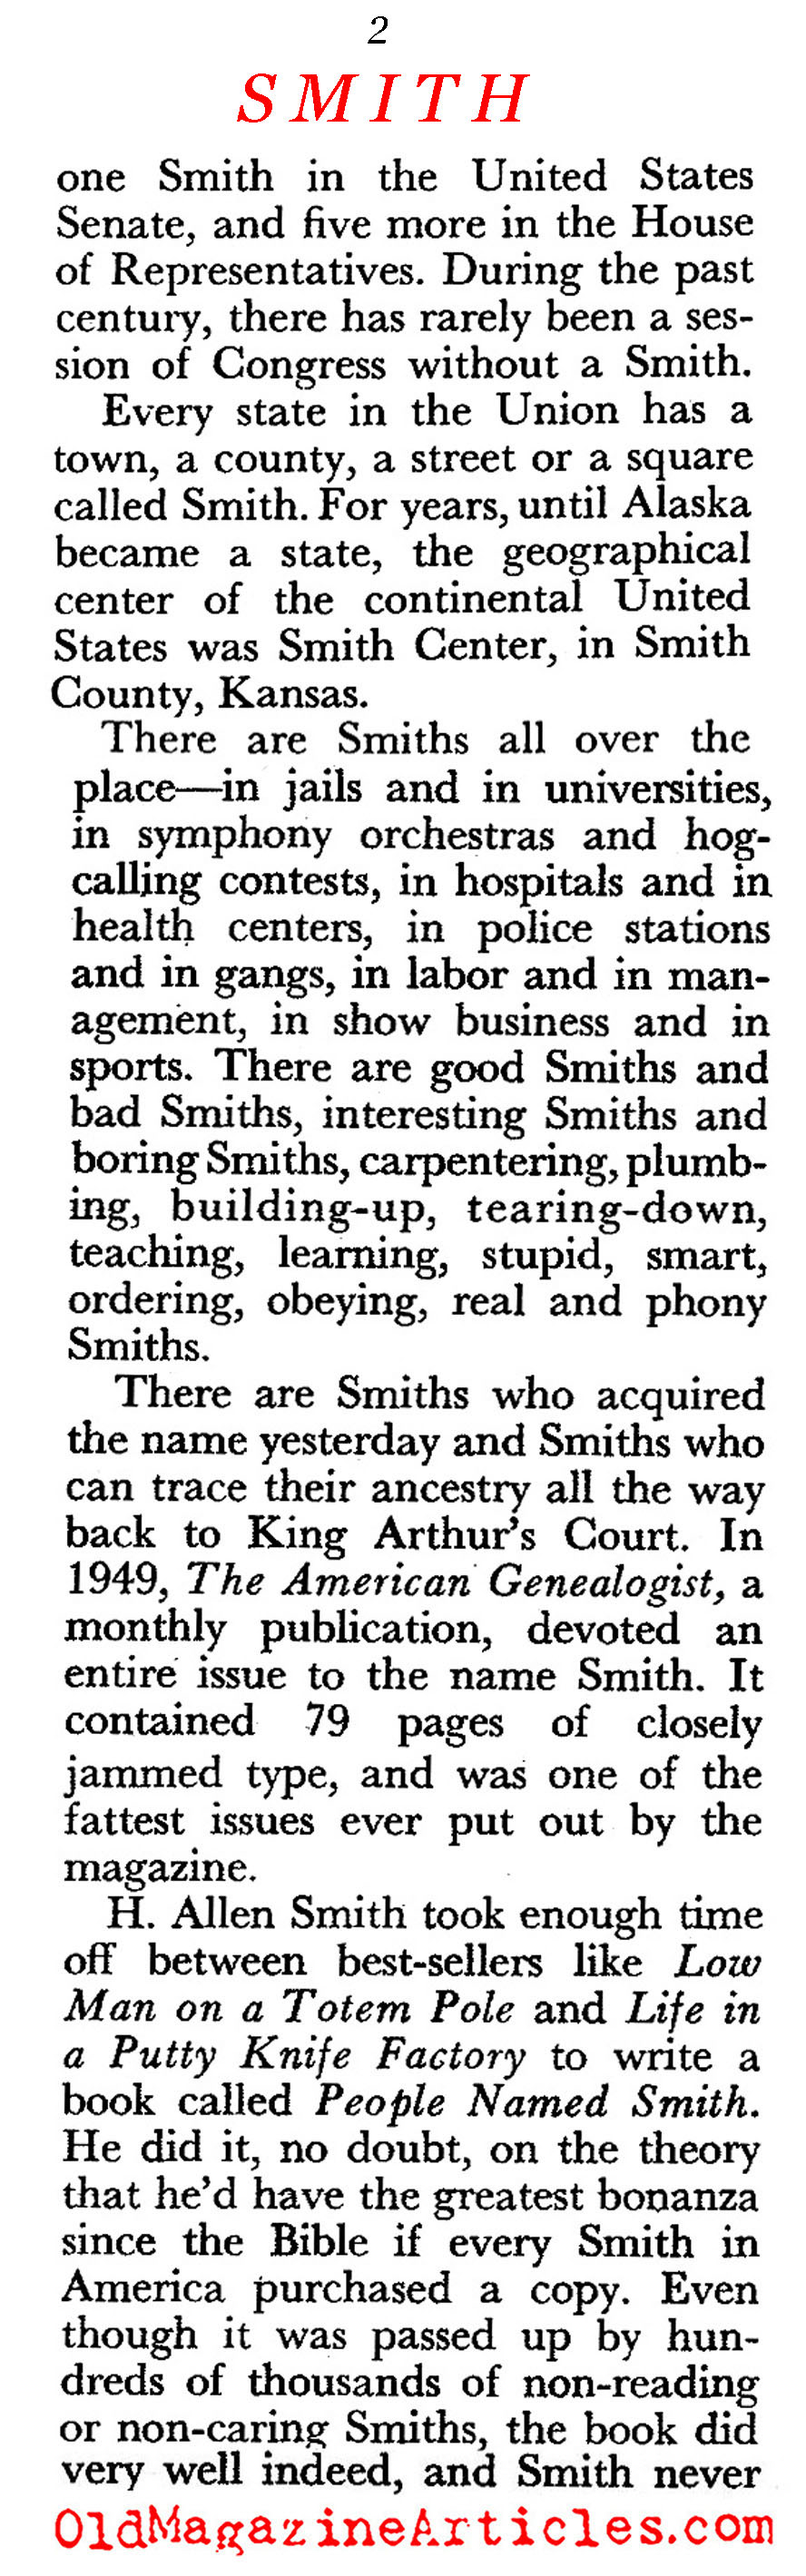 The Smiths in America (Pageant Magazine, 1959)